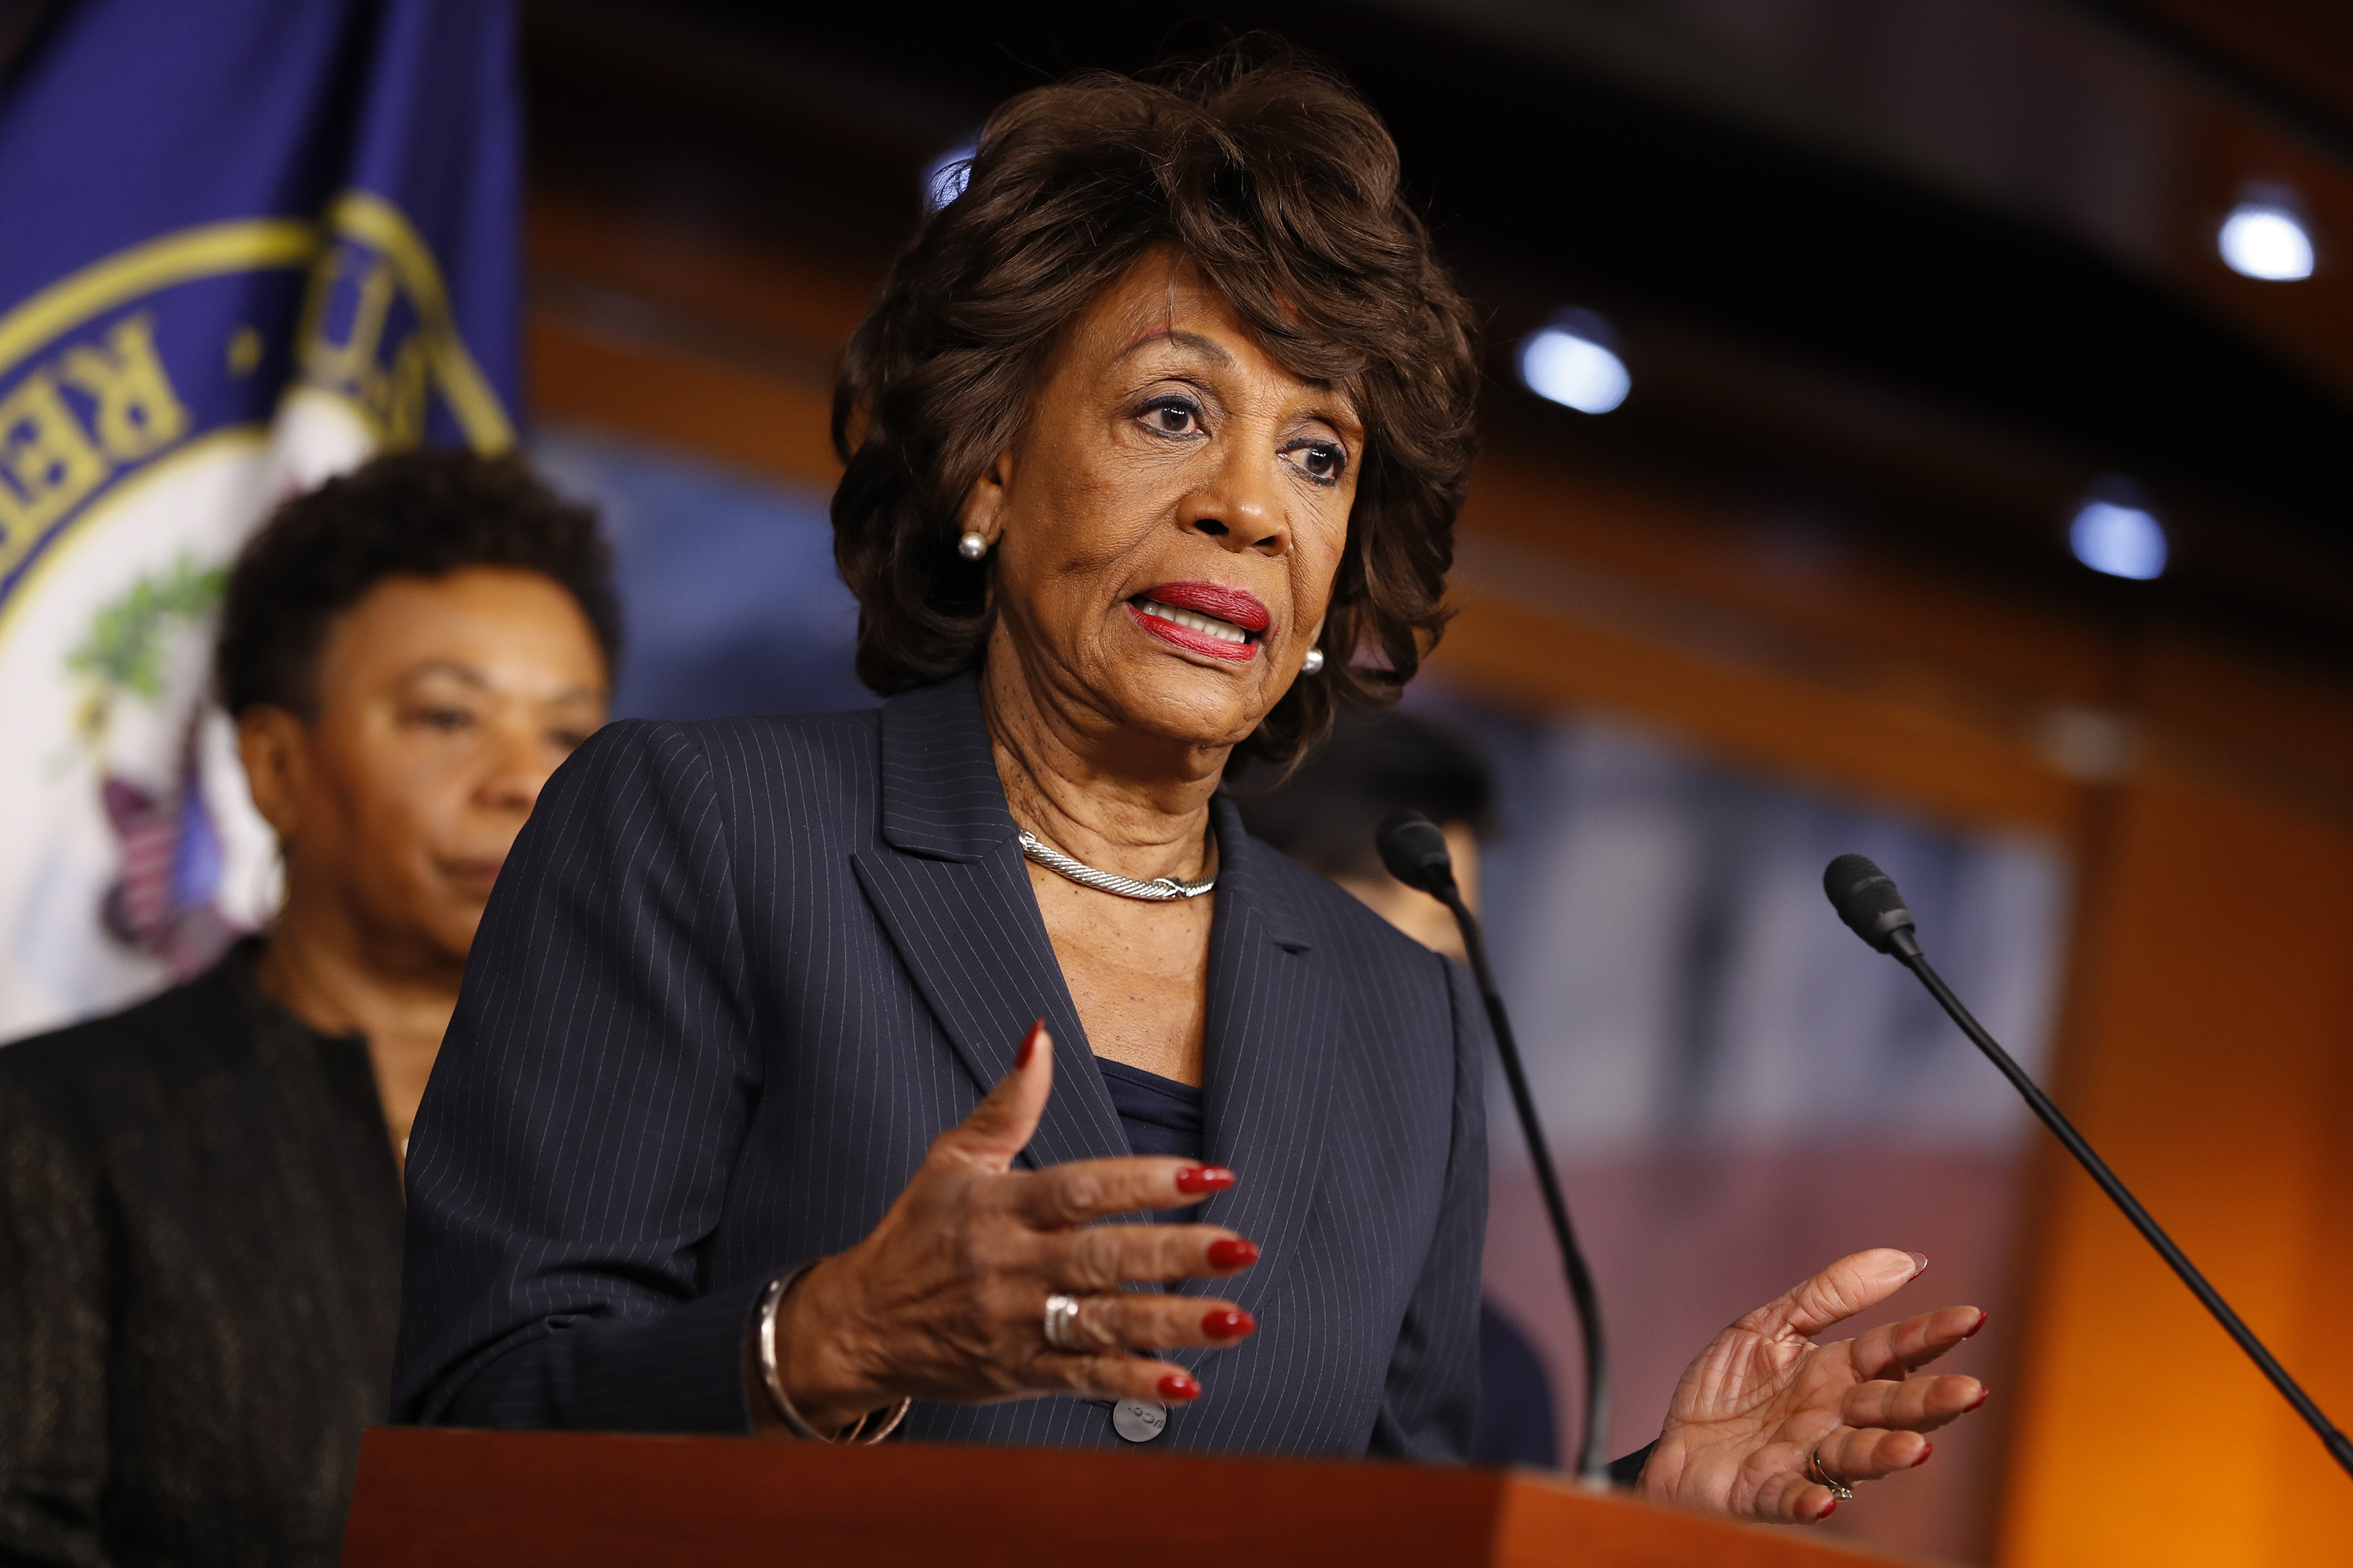 Maxine Waters (D-CA) speaks at a press conference on Capitol Hill Jan. 31, 2017 in Washington, DC.